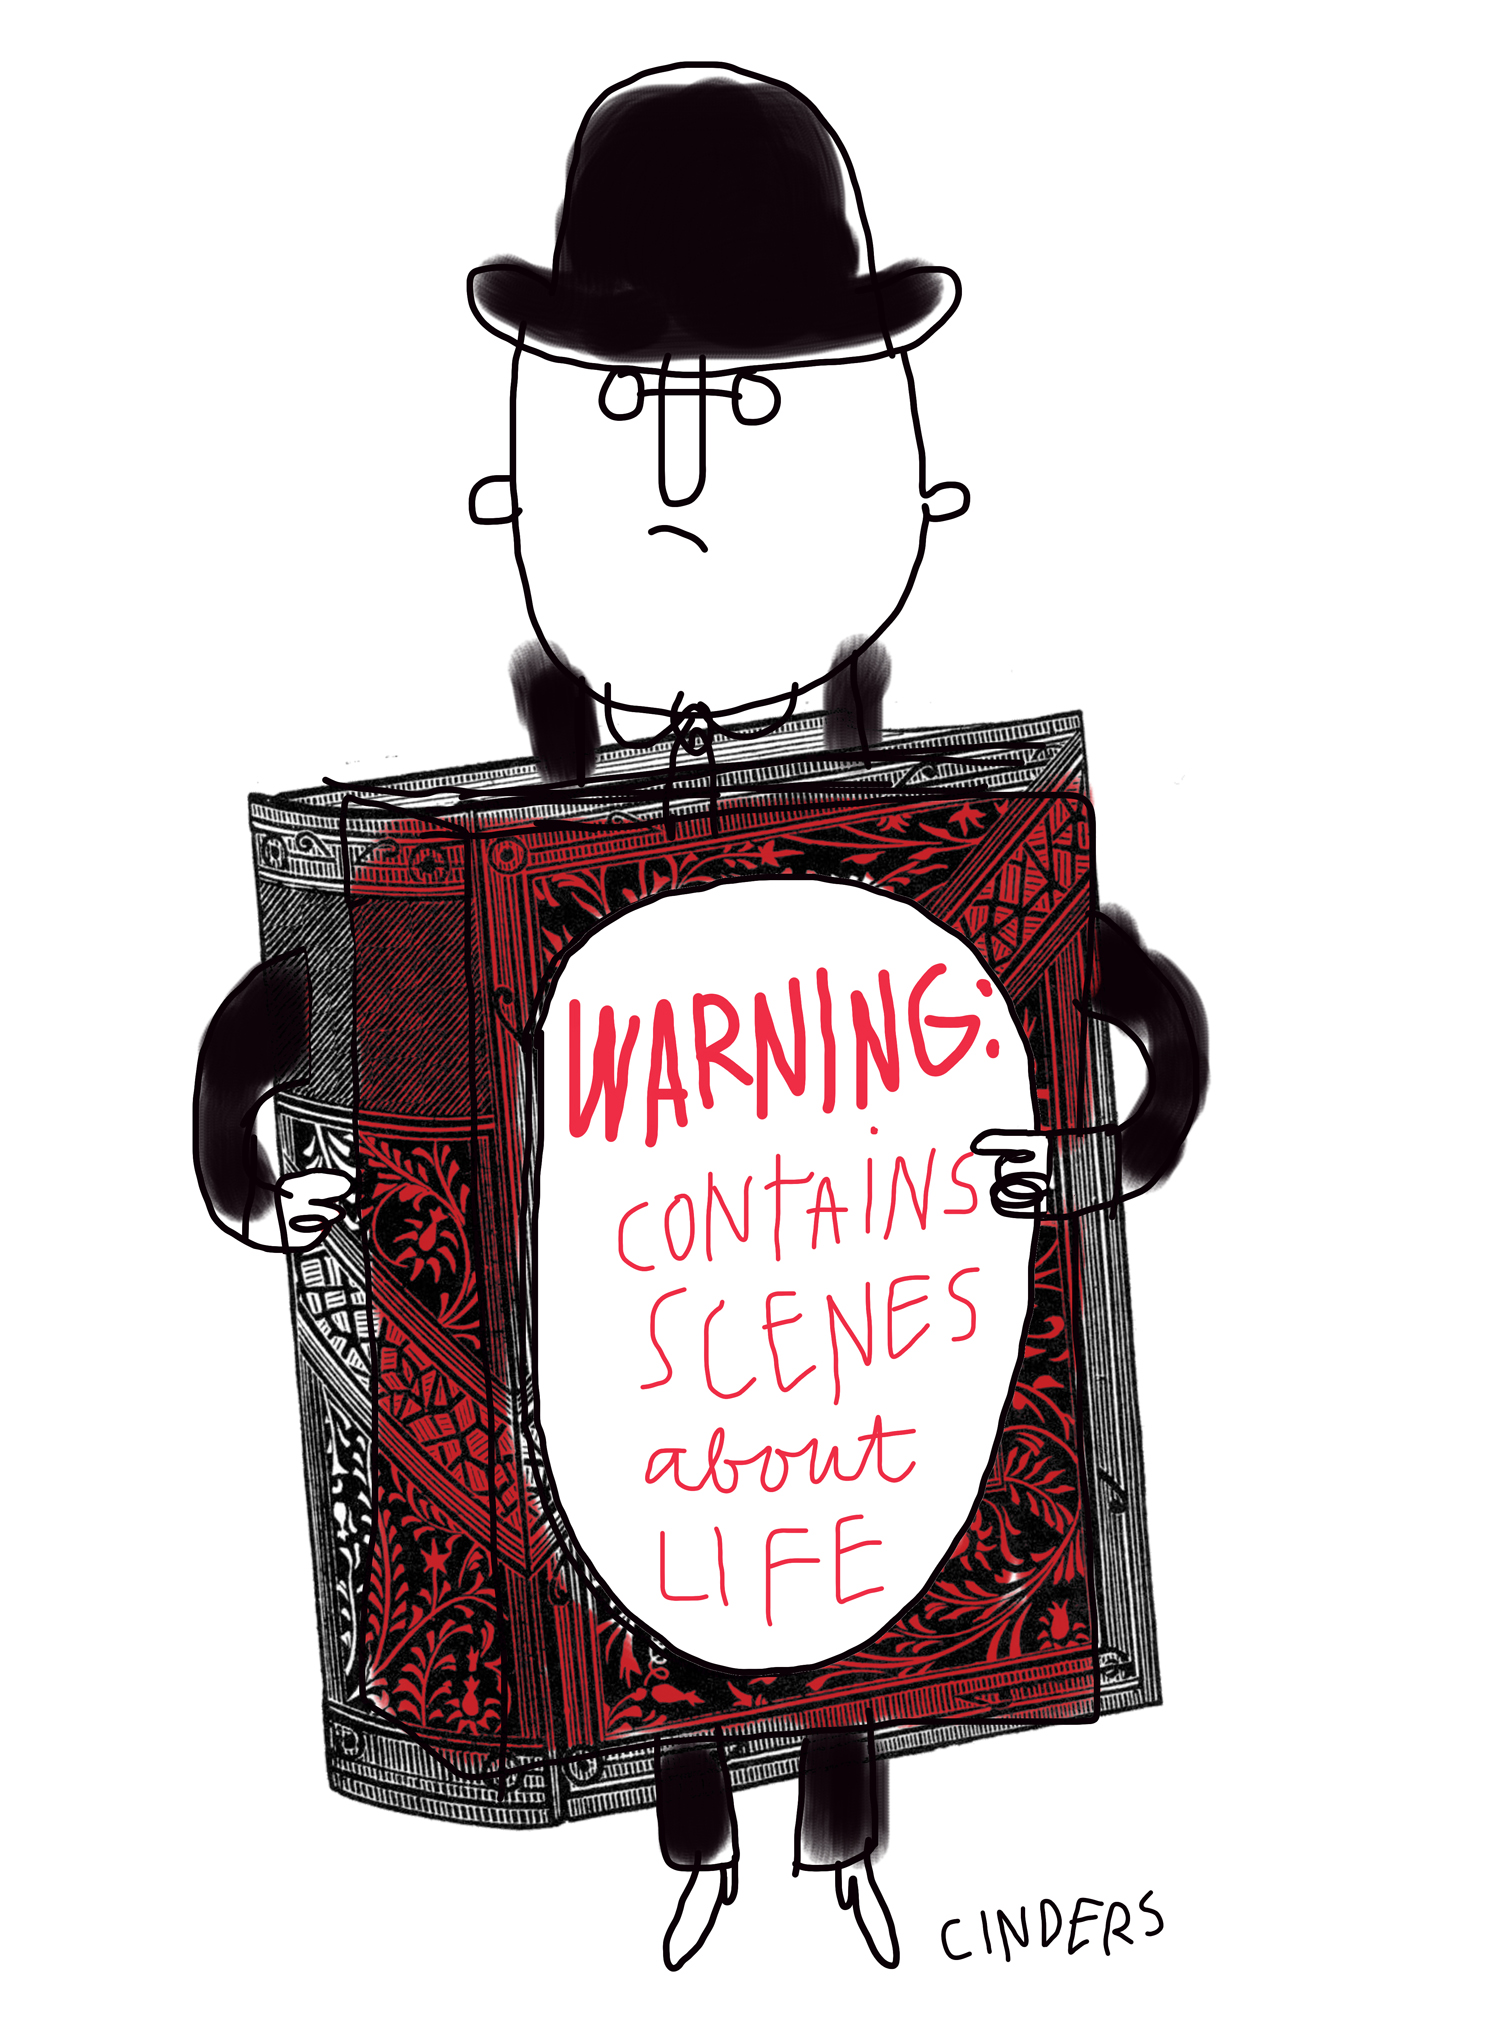 Warnings or Censorship  The Globe and Mail